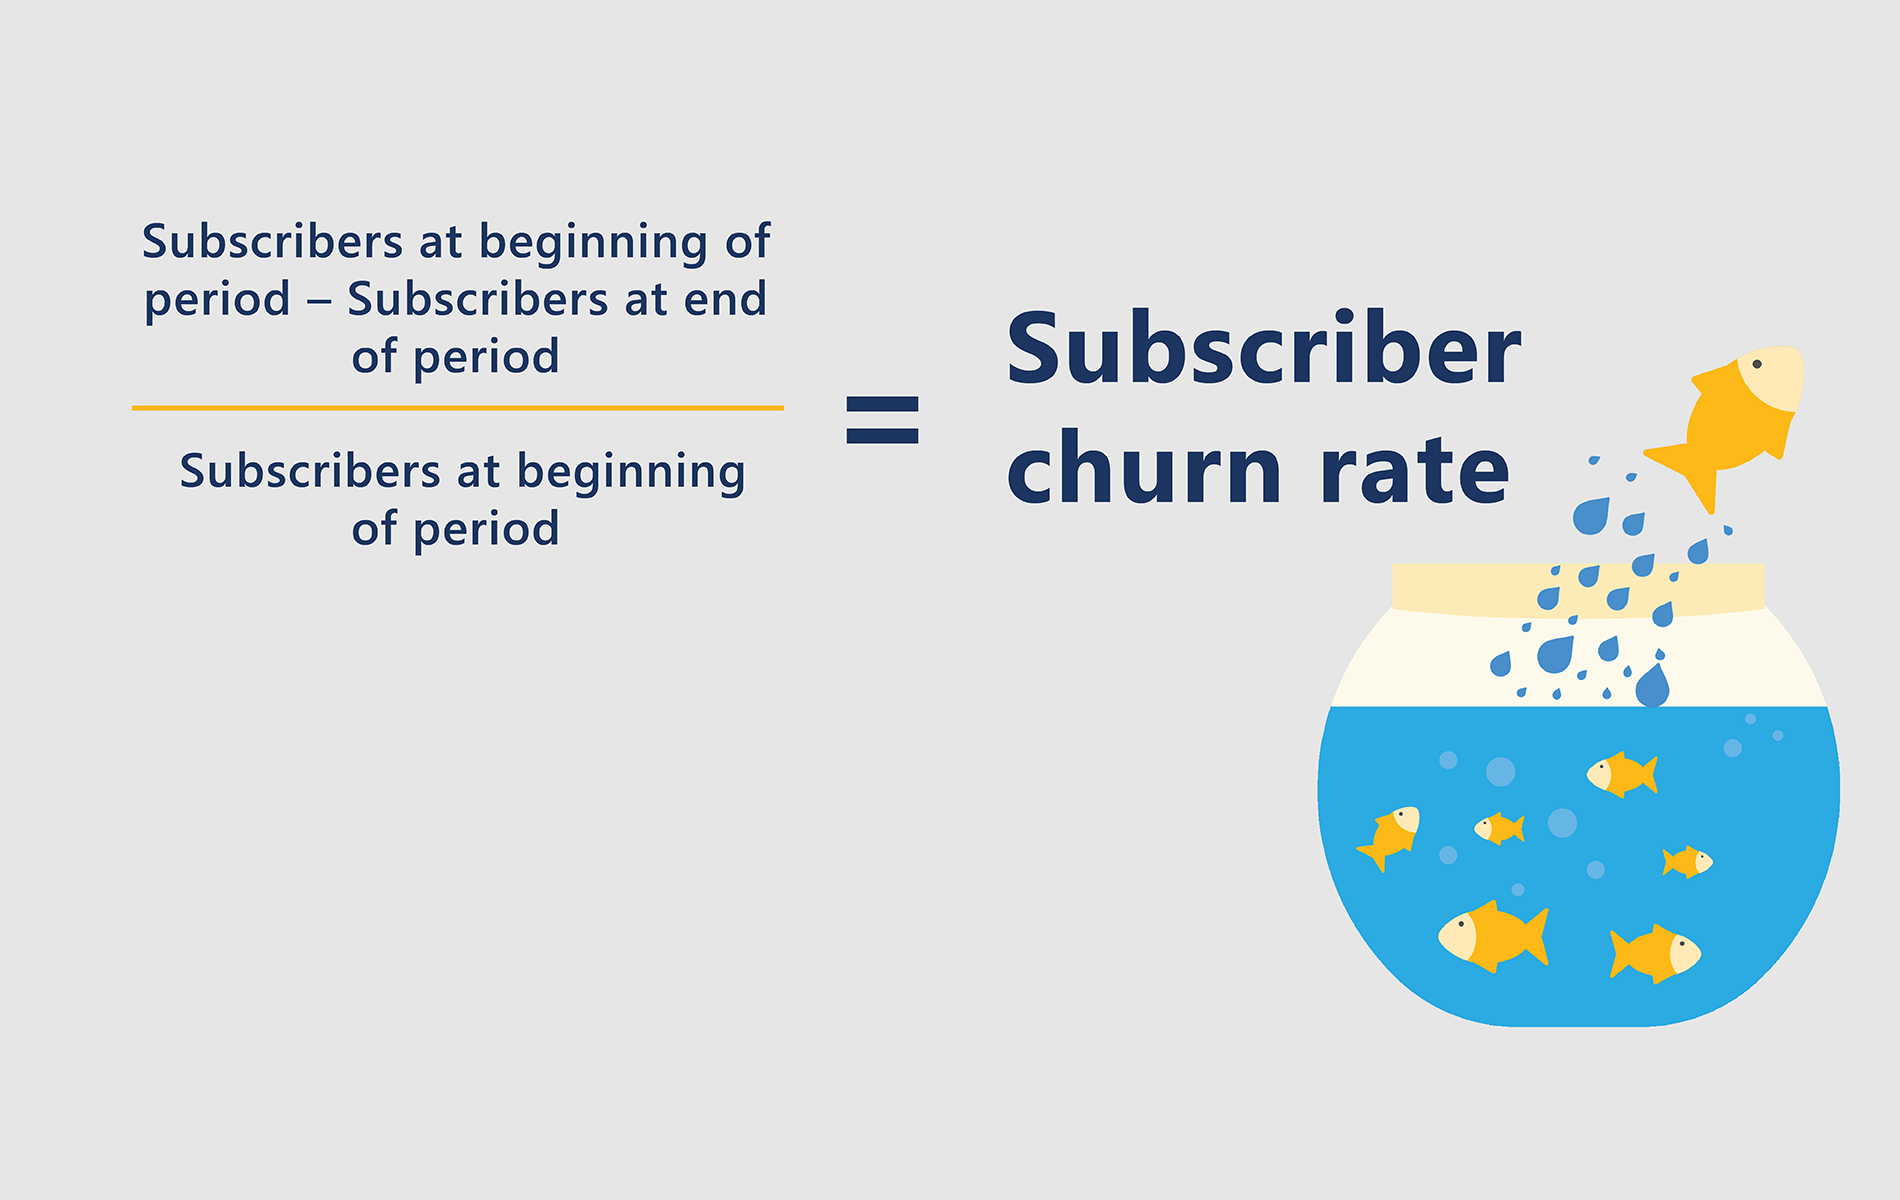 Subscriber churn metrics – The subscriber churn rate